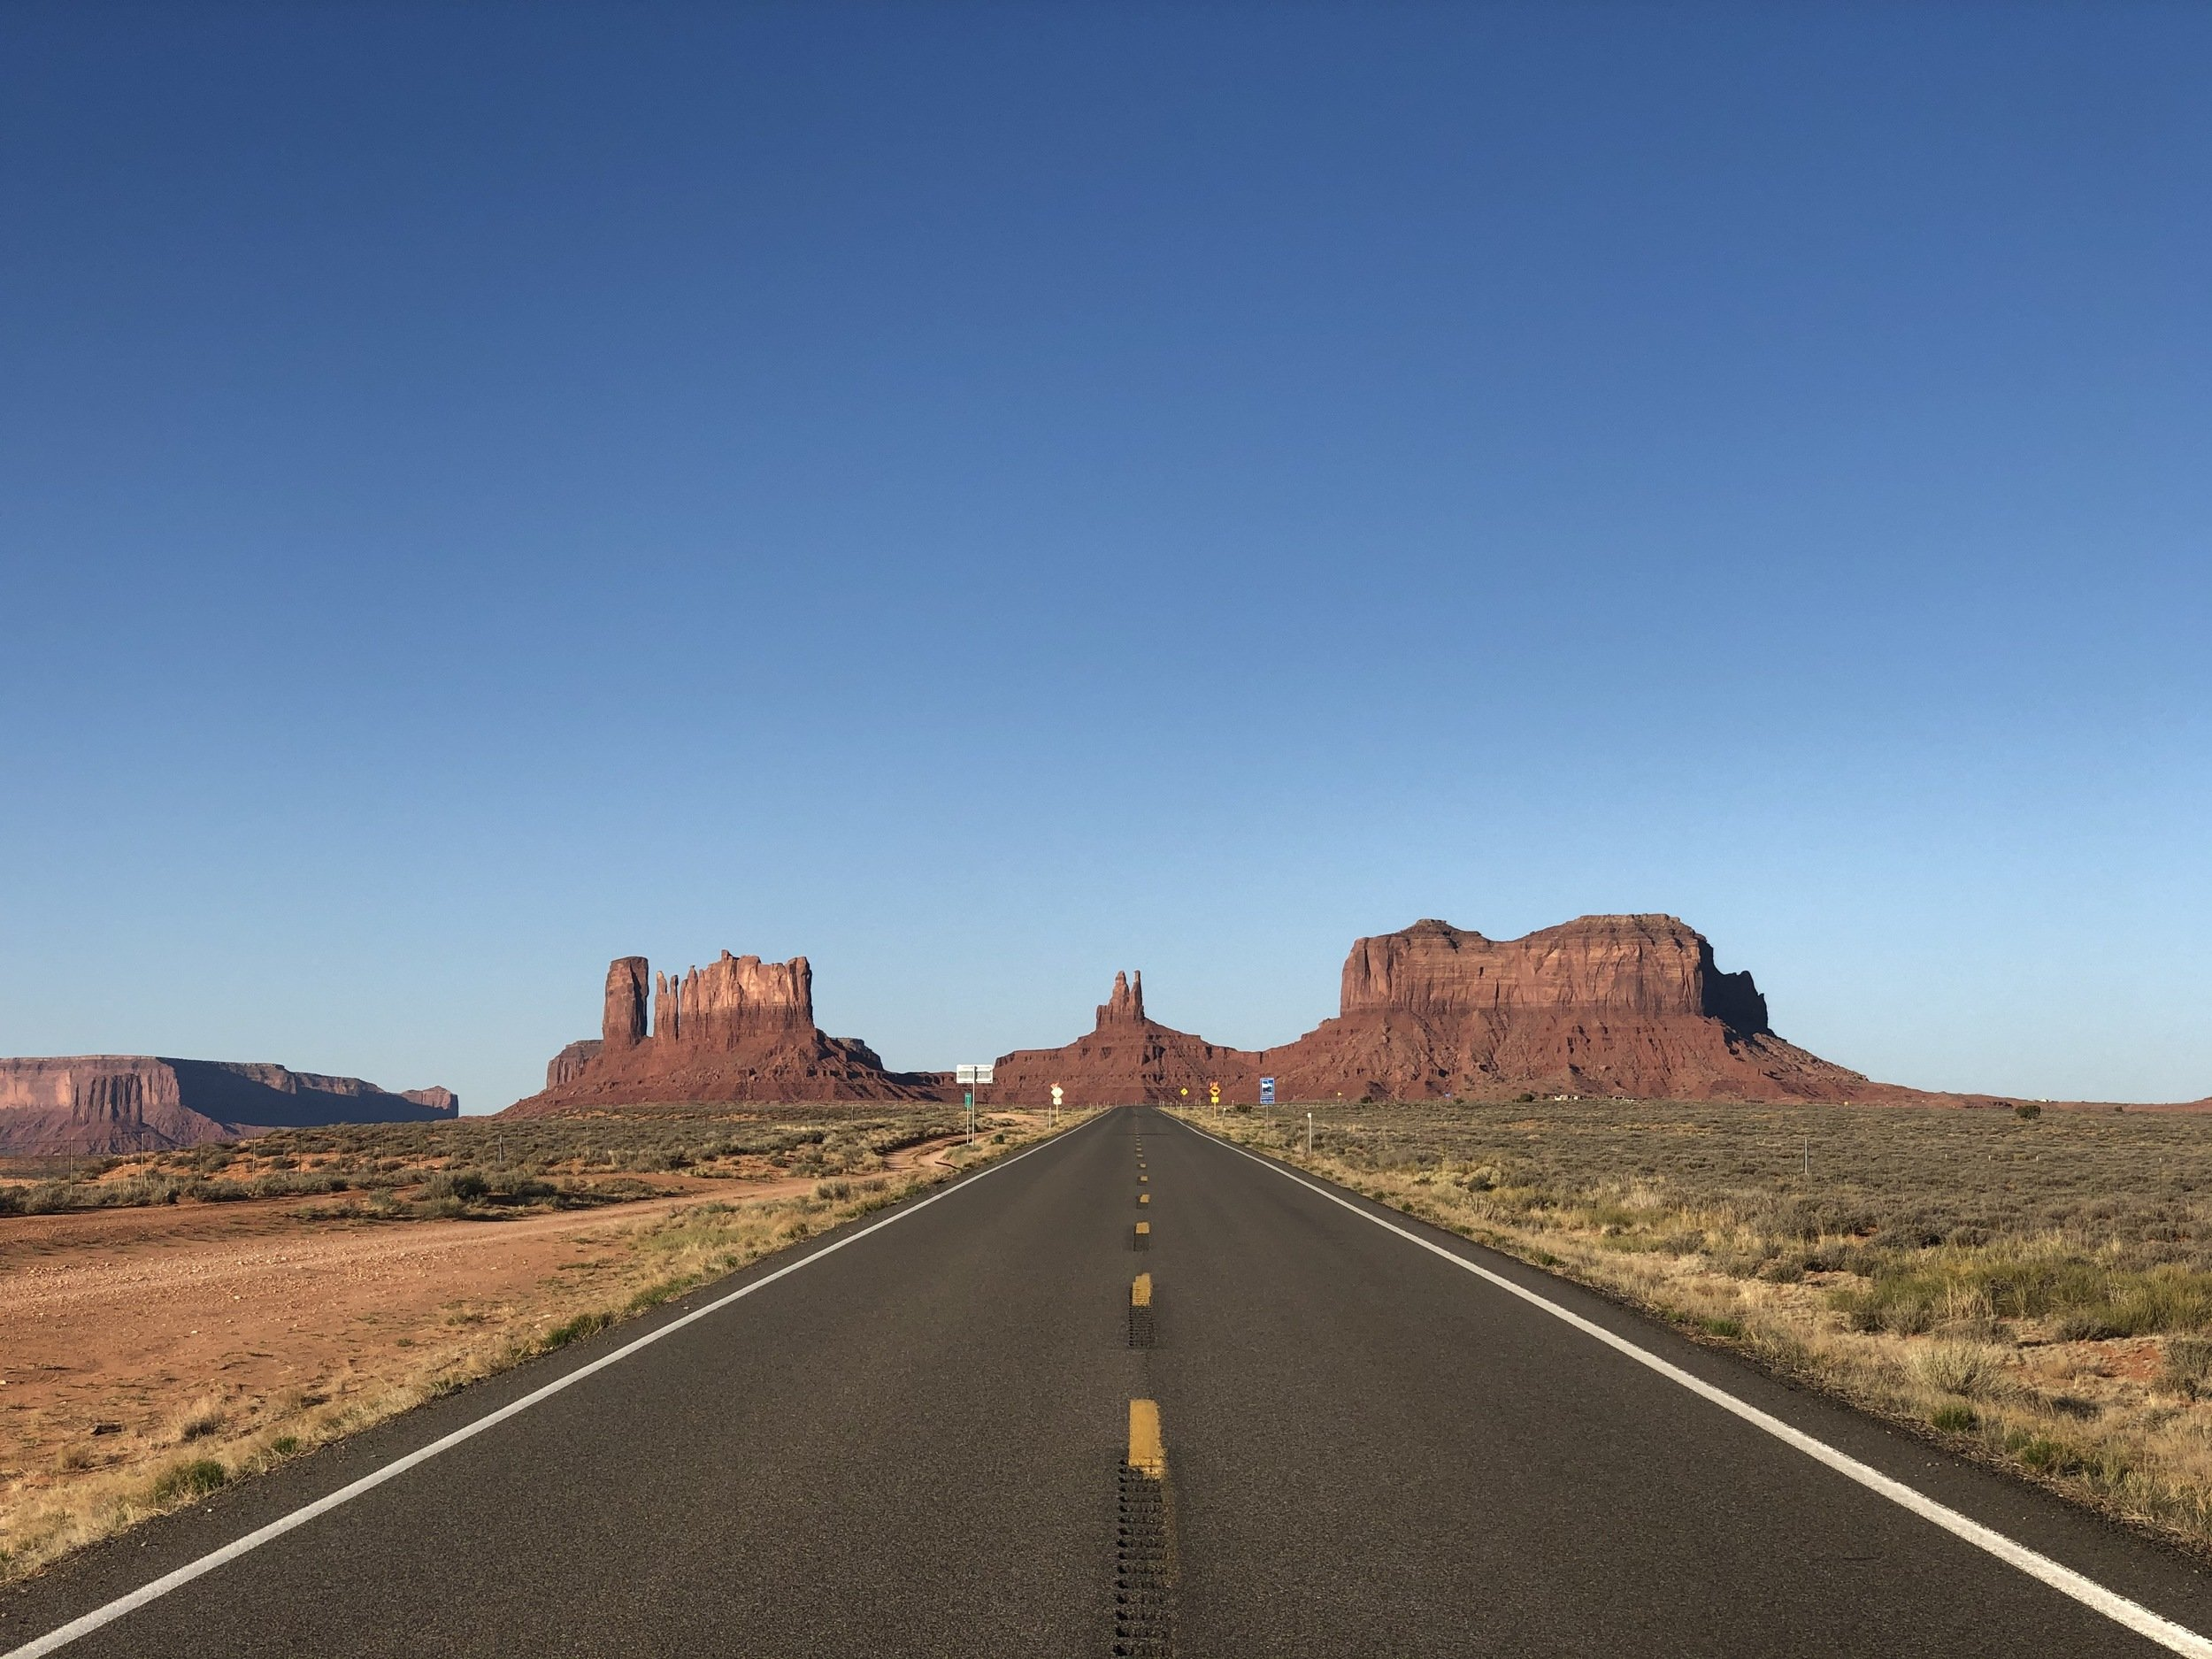 Try some destination photography in Monument Valley thumbnail